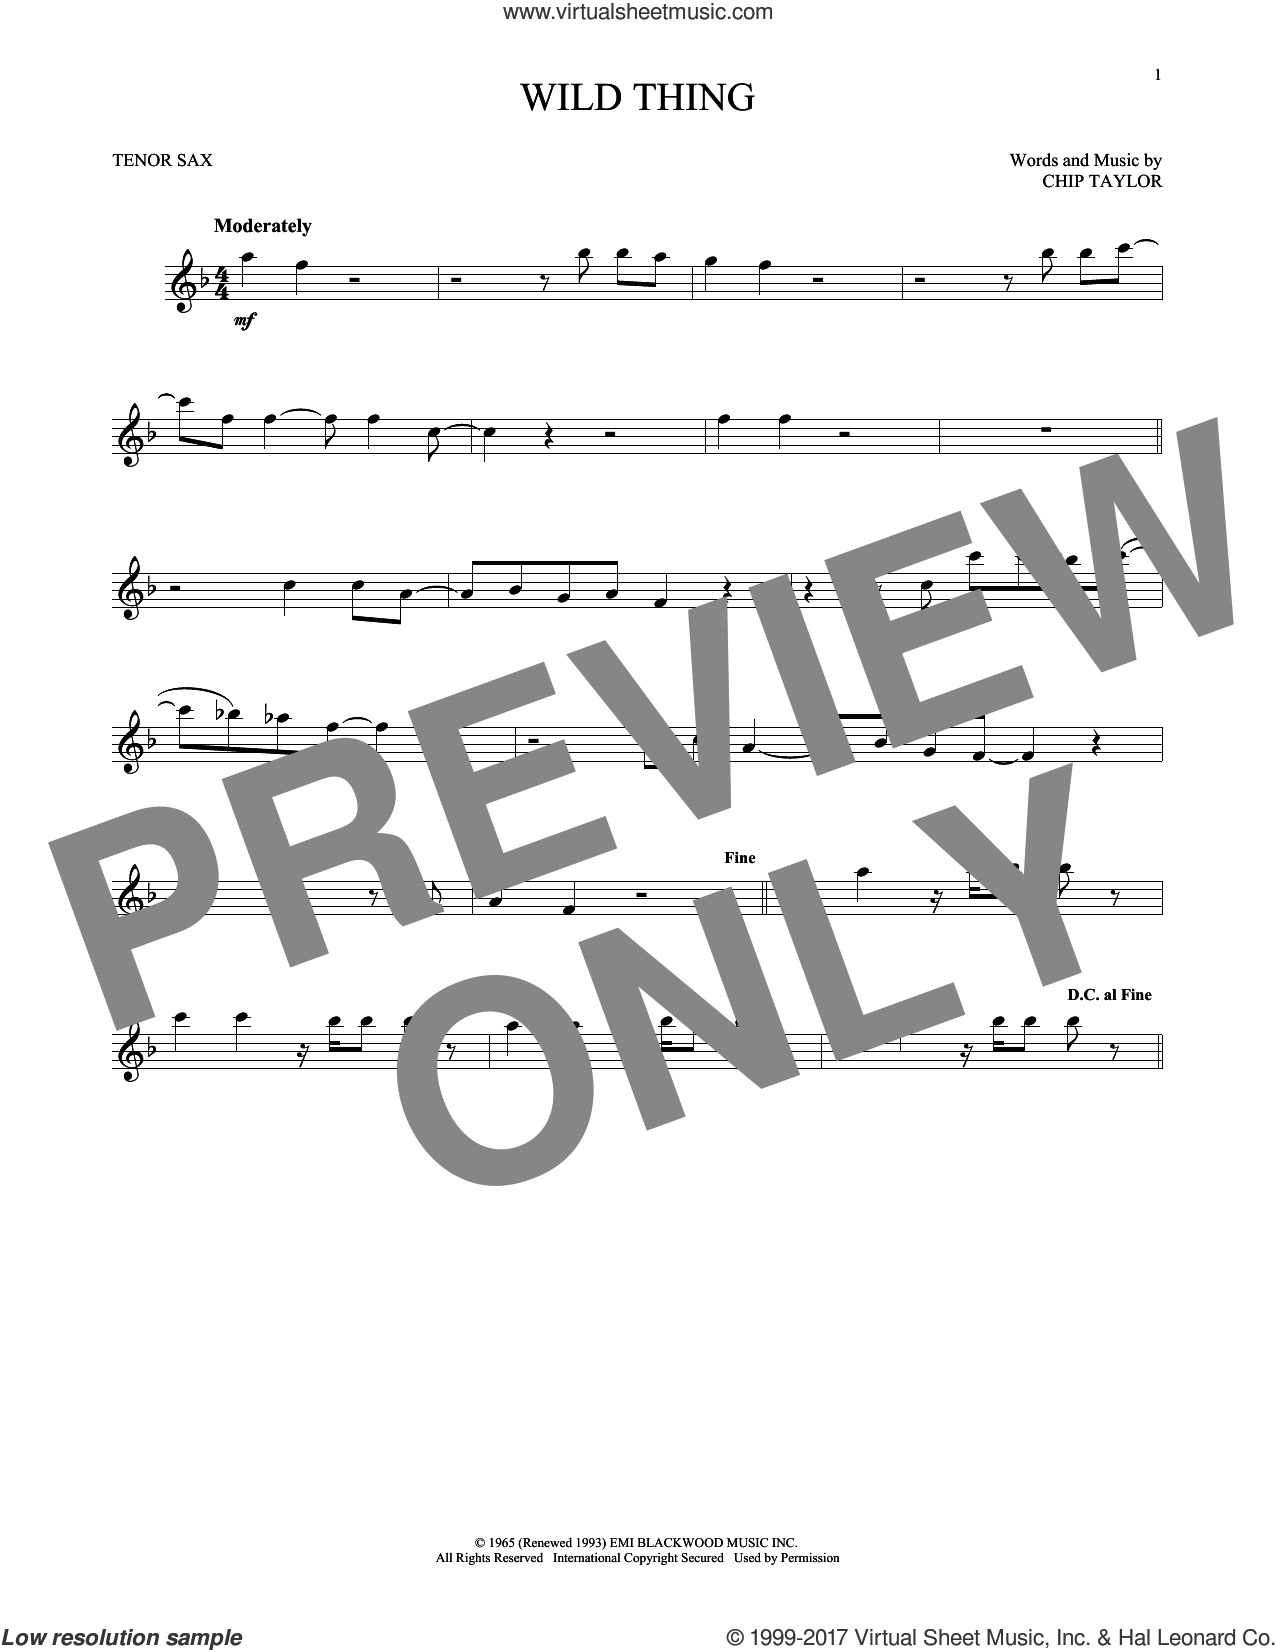 Wild Thing sheet music for tenor saxophone solo by The Troggs and Chip Taylor, intermediate skill level